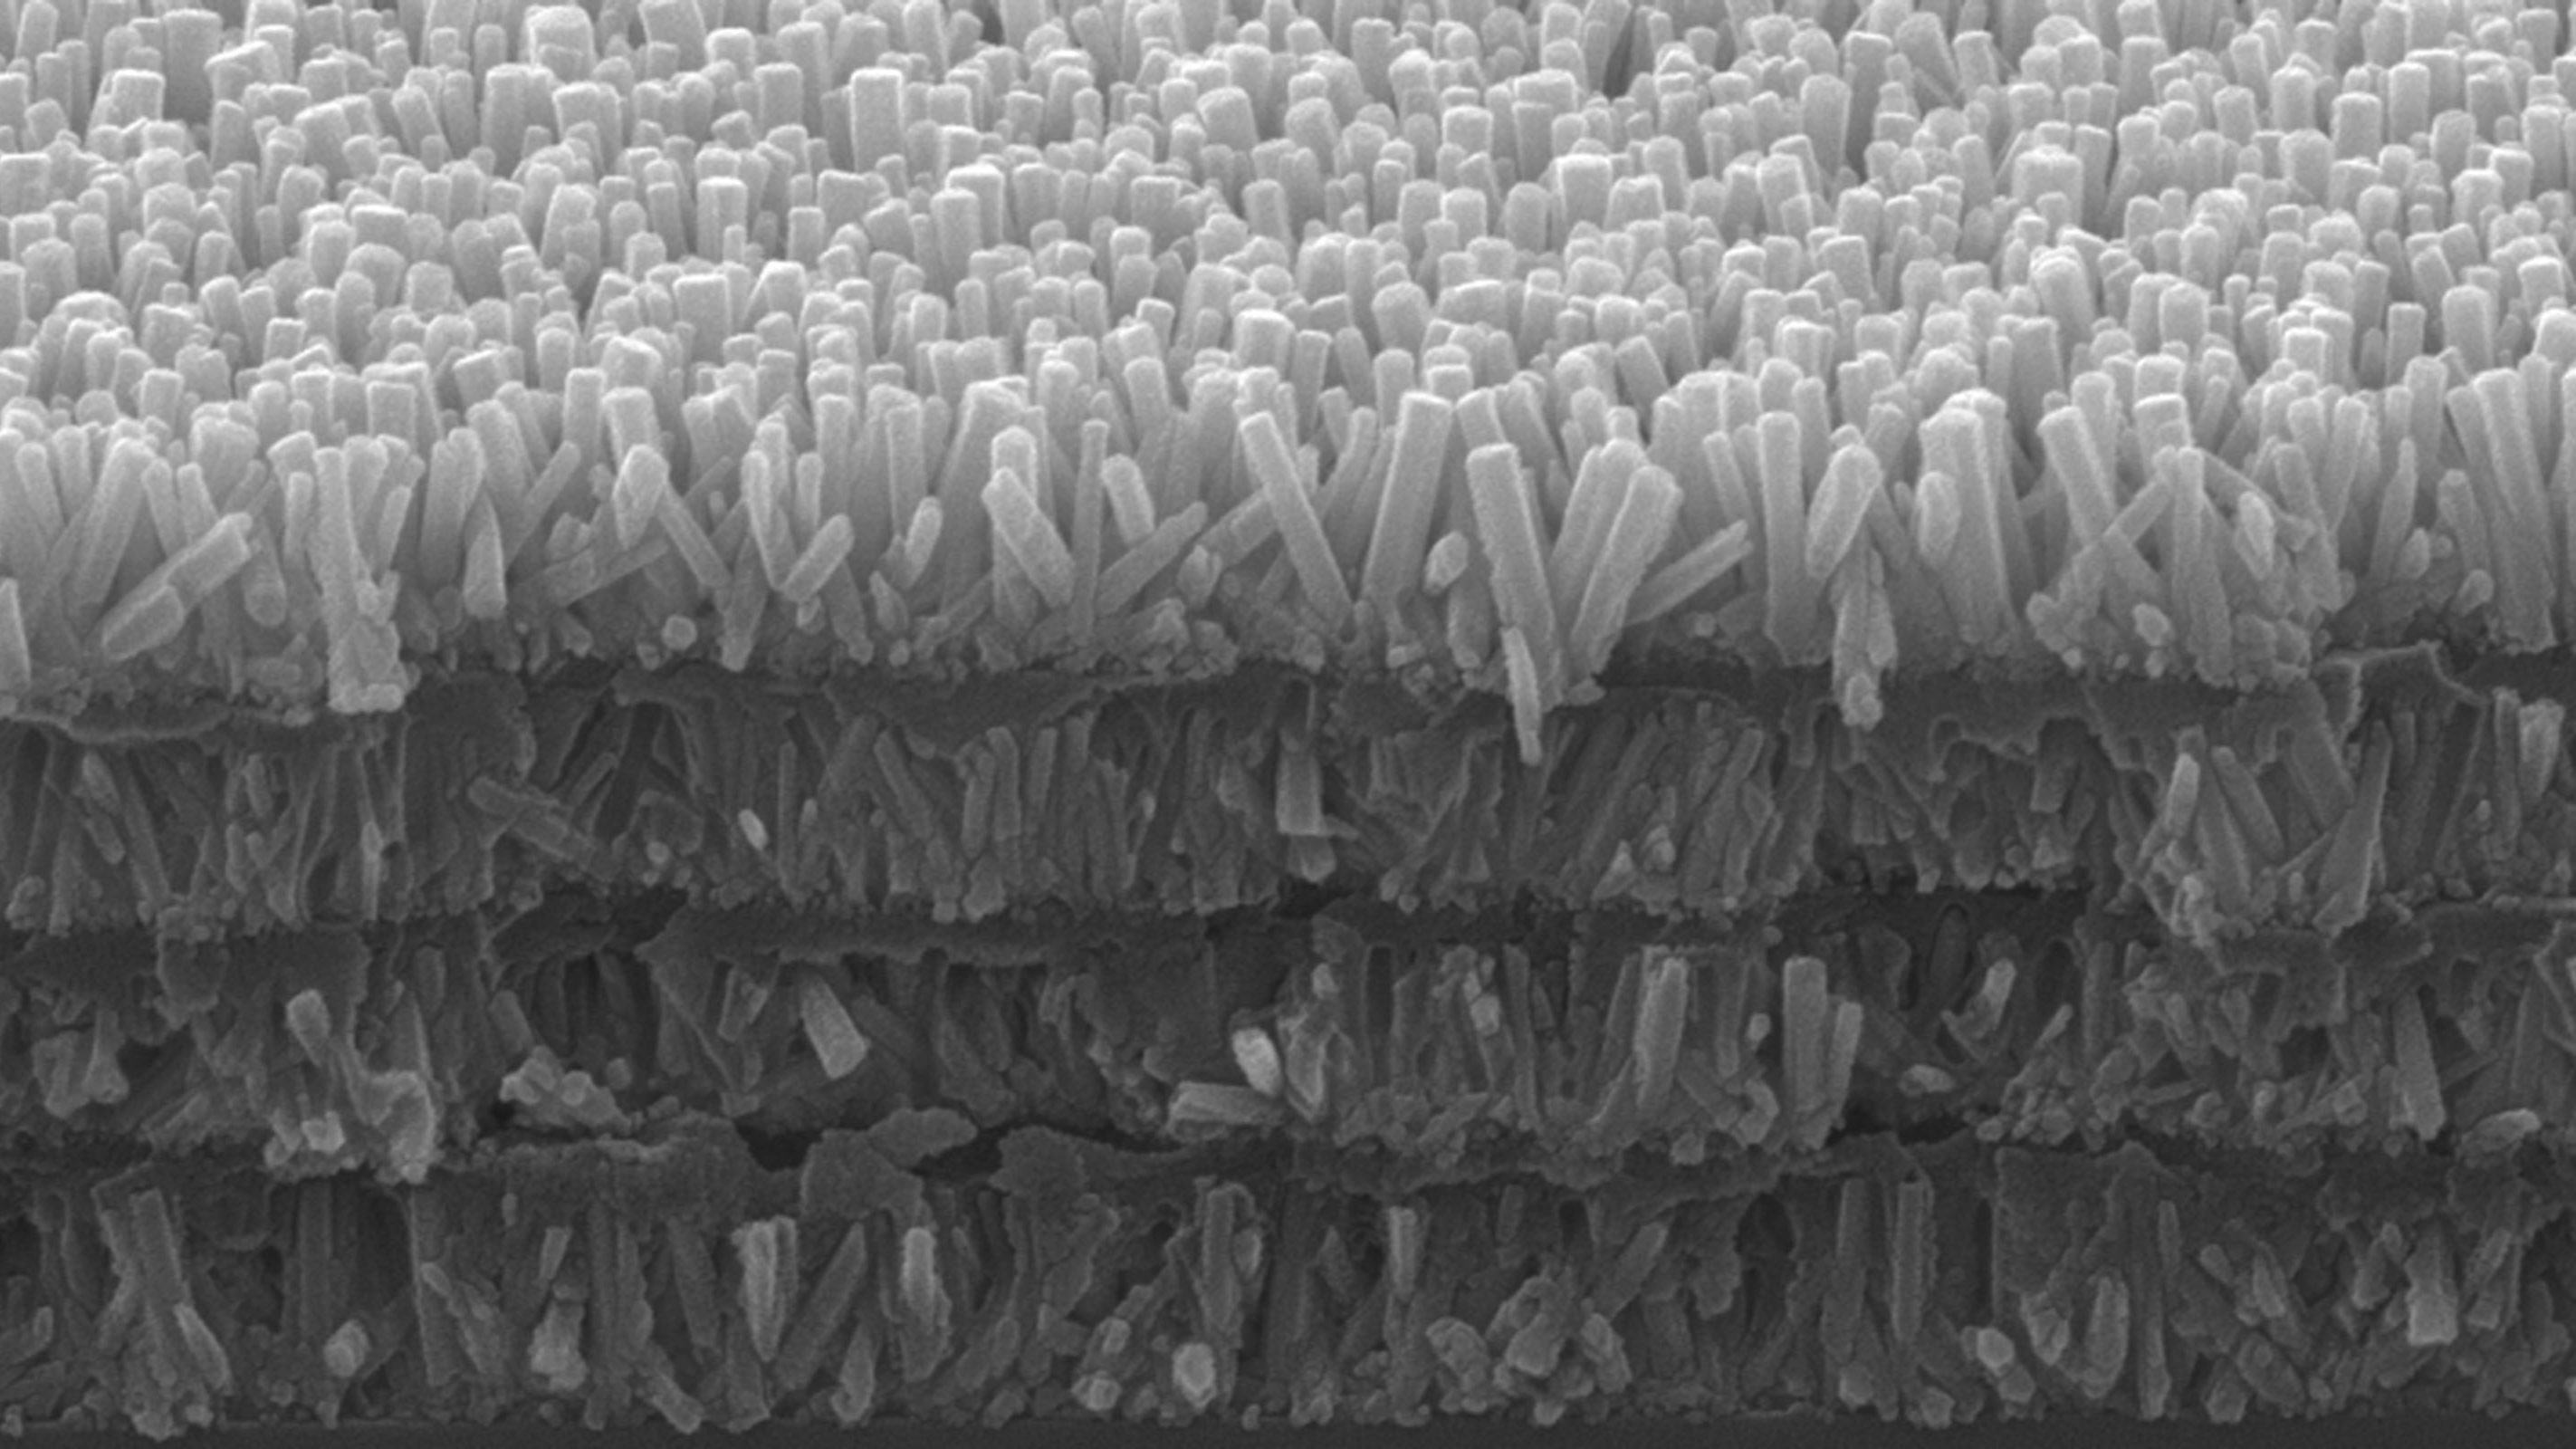 four layers of nanowires